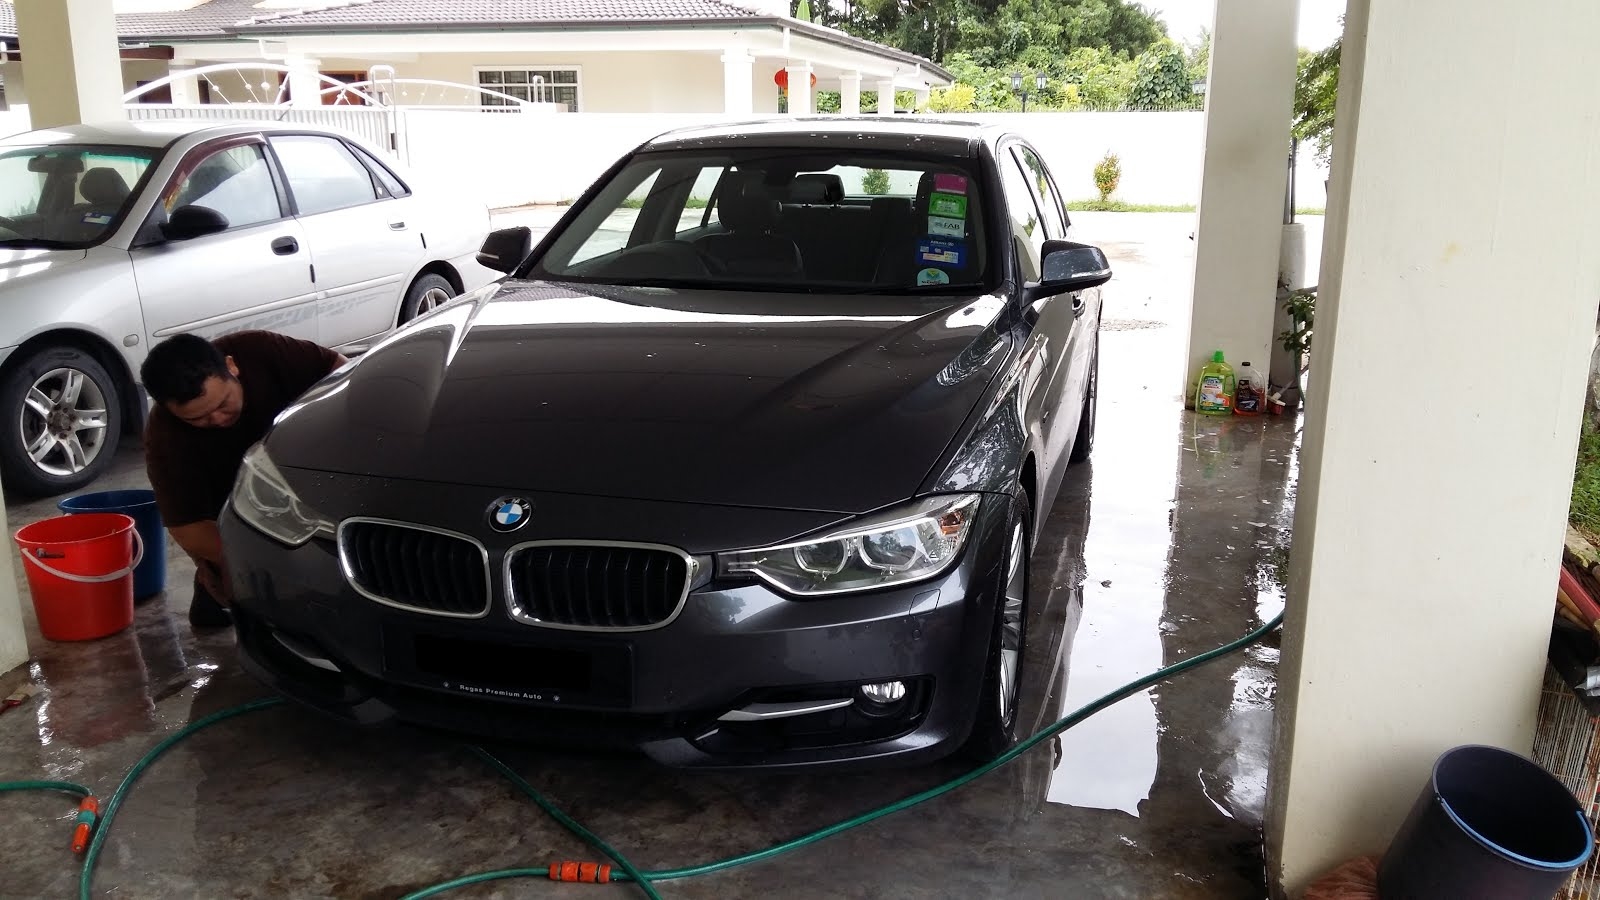 Car sticker design kuching - As Soon As Daylight Starts We Also Started Washing Claying Decontaminate And Polish Car For Car Coating